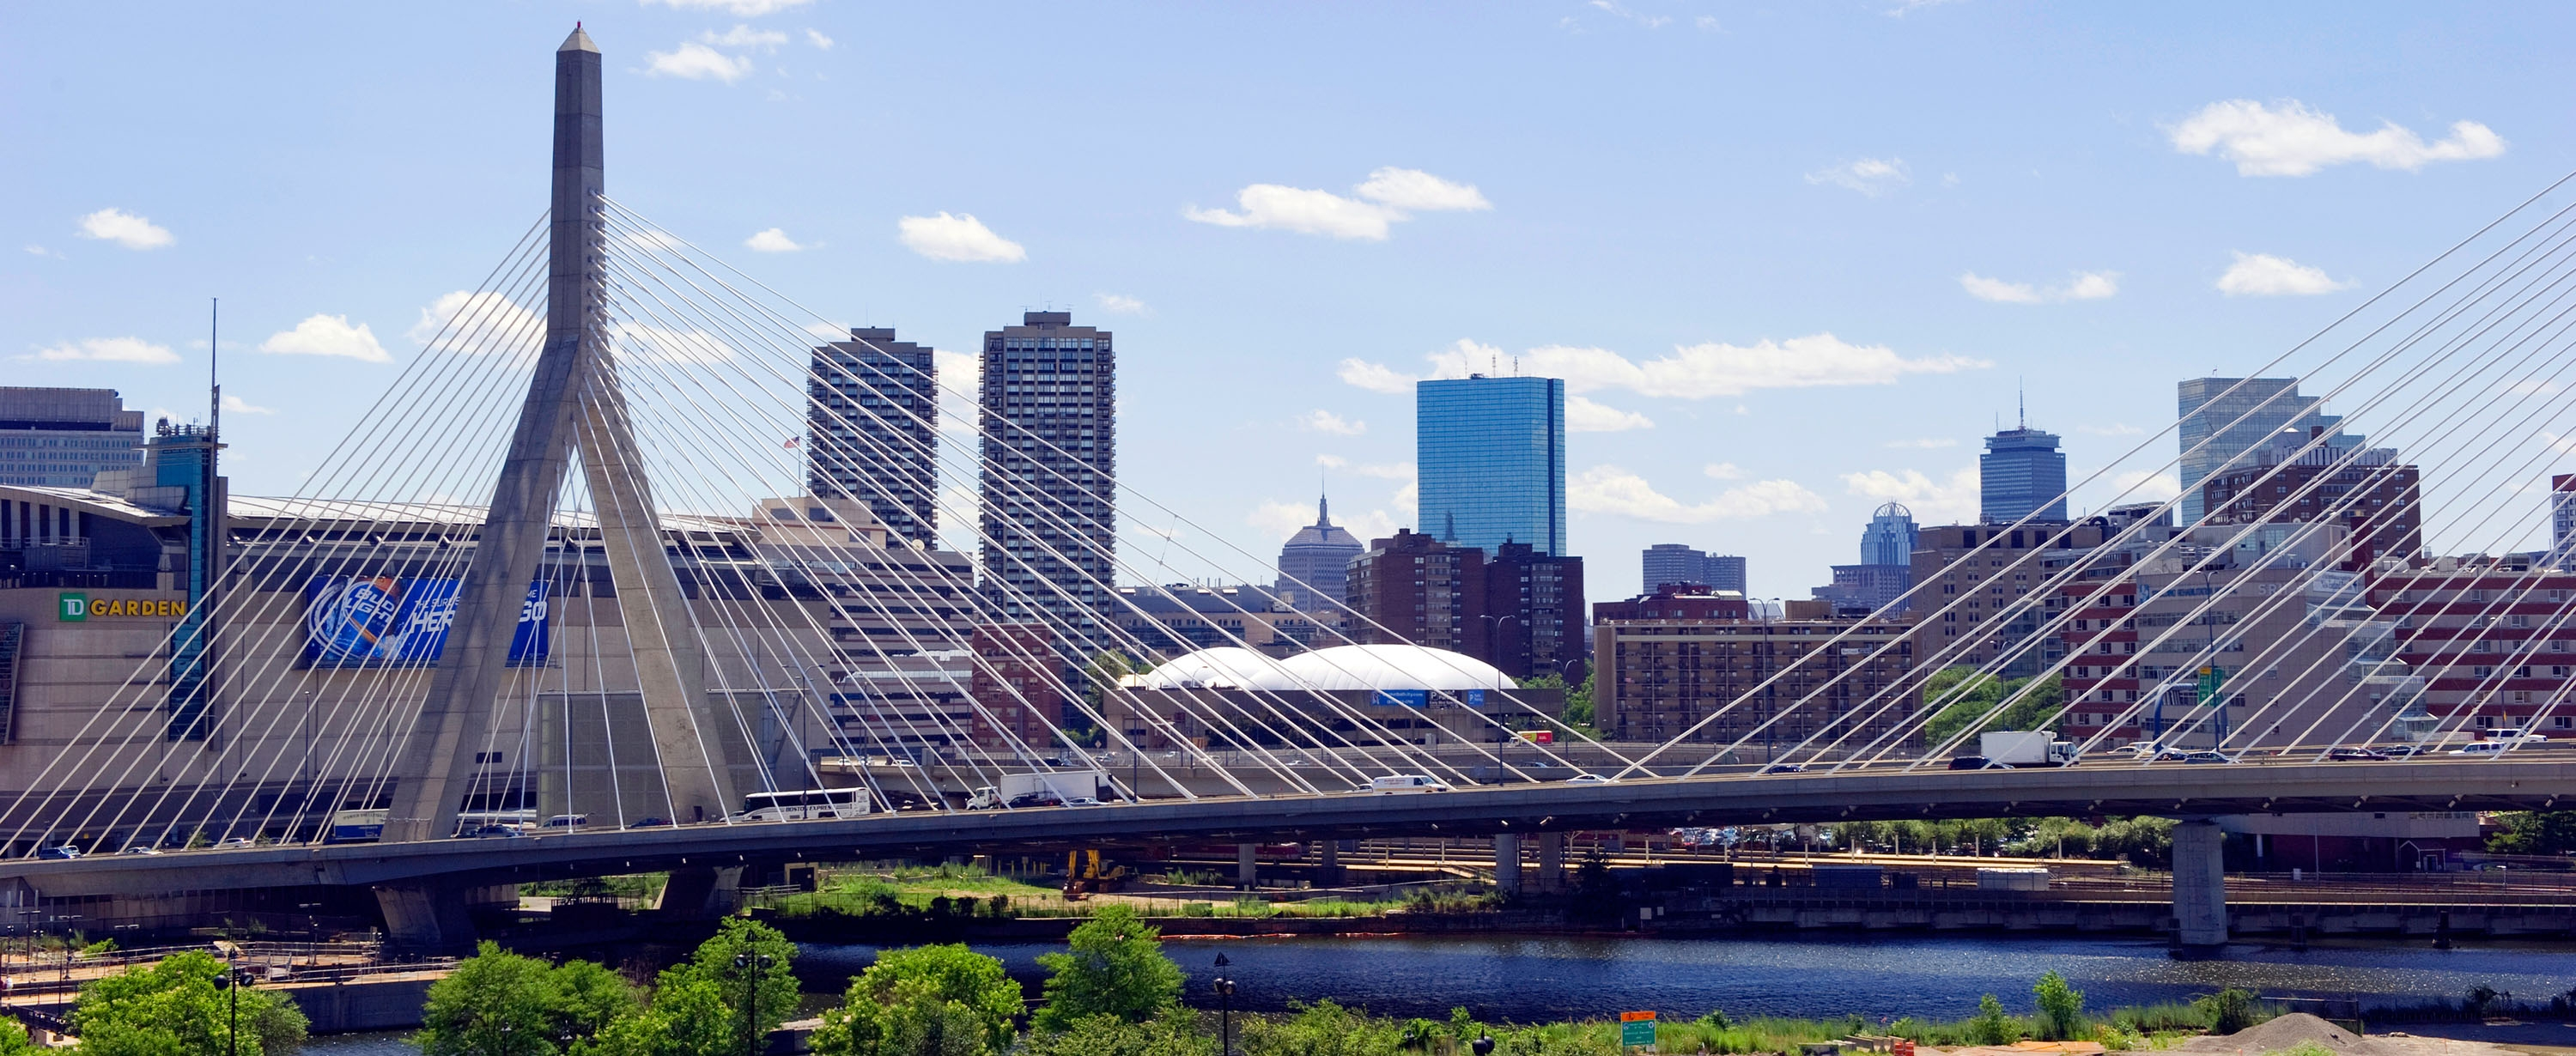 Boston Skyline with the Zakim Bridge in the foreground